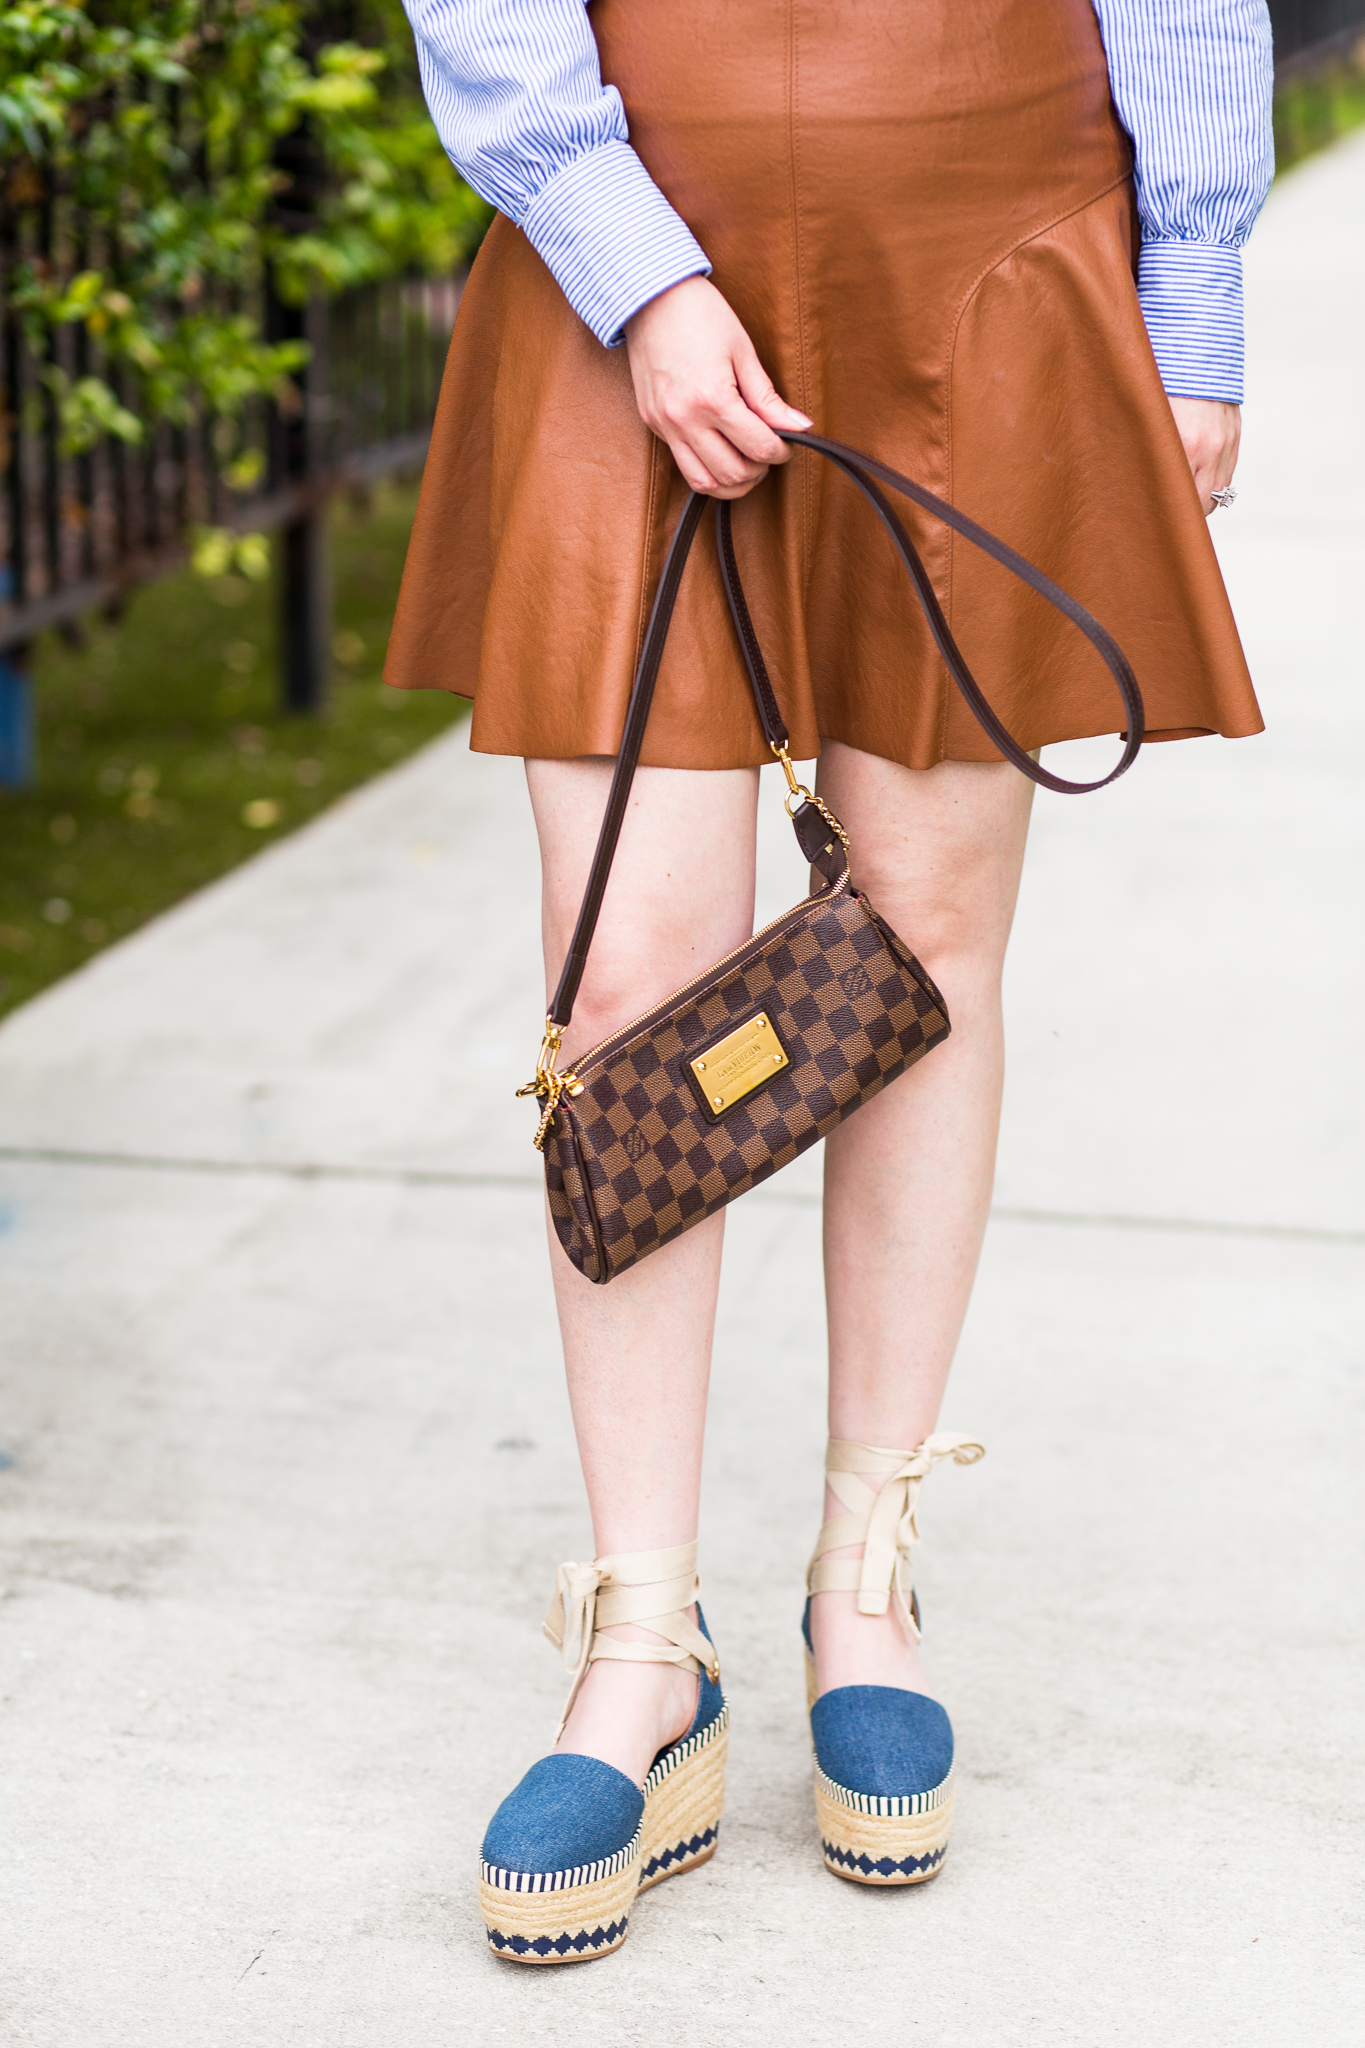 Summertime denim colors and espadrilles, summer fashion, striped top, cognac skirt, leather skirt, tory burch dandy espadrilles, louis vuitton eva clutch, mini skirt, summer outfit,